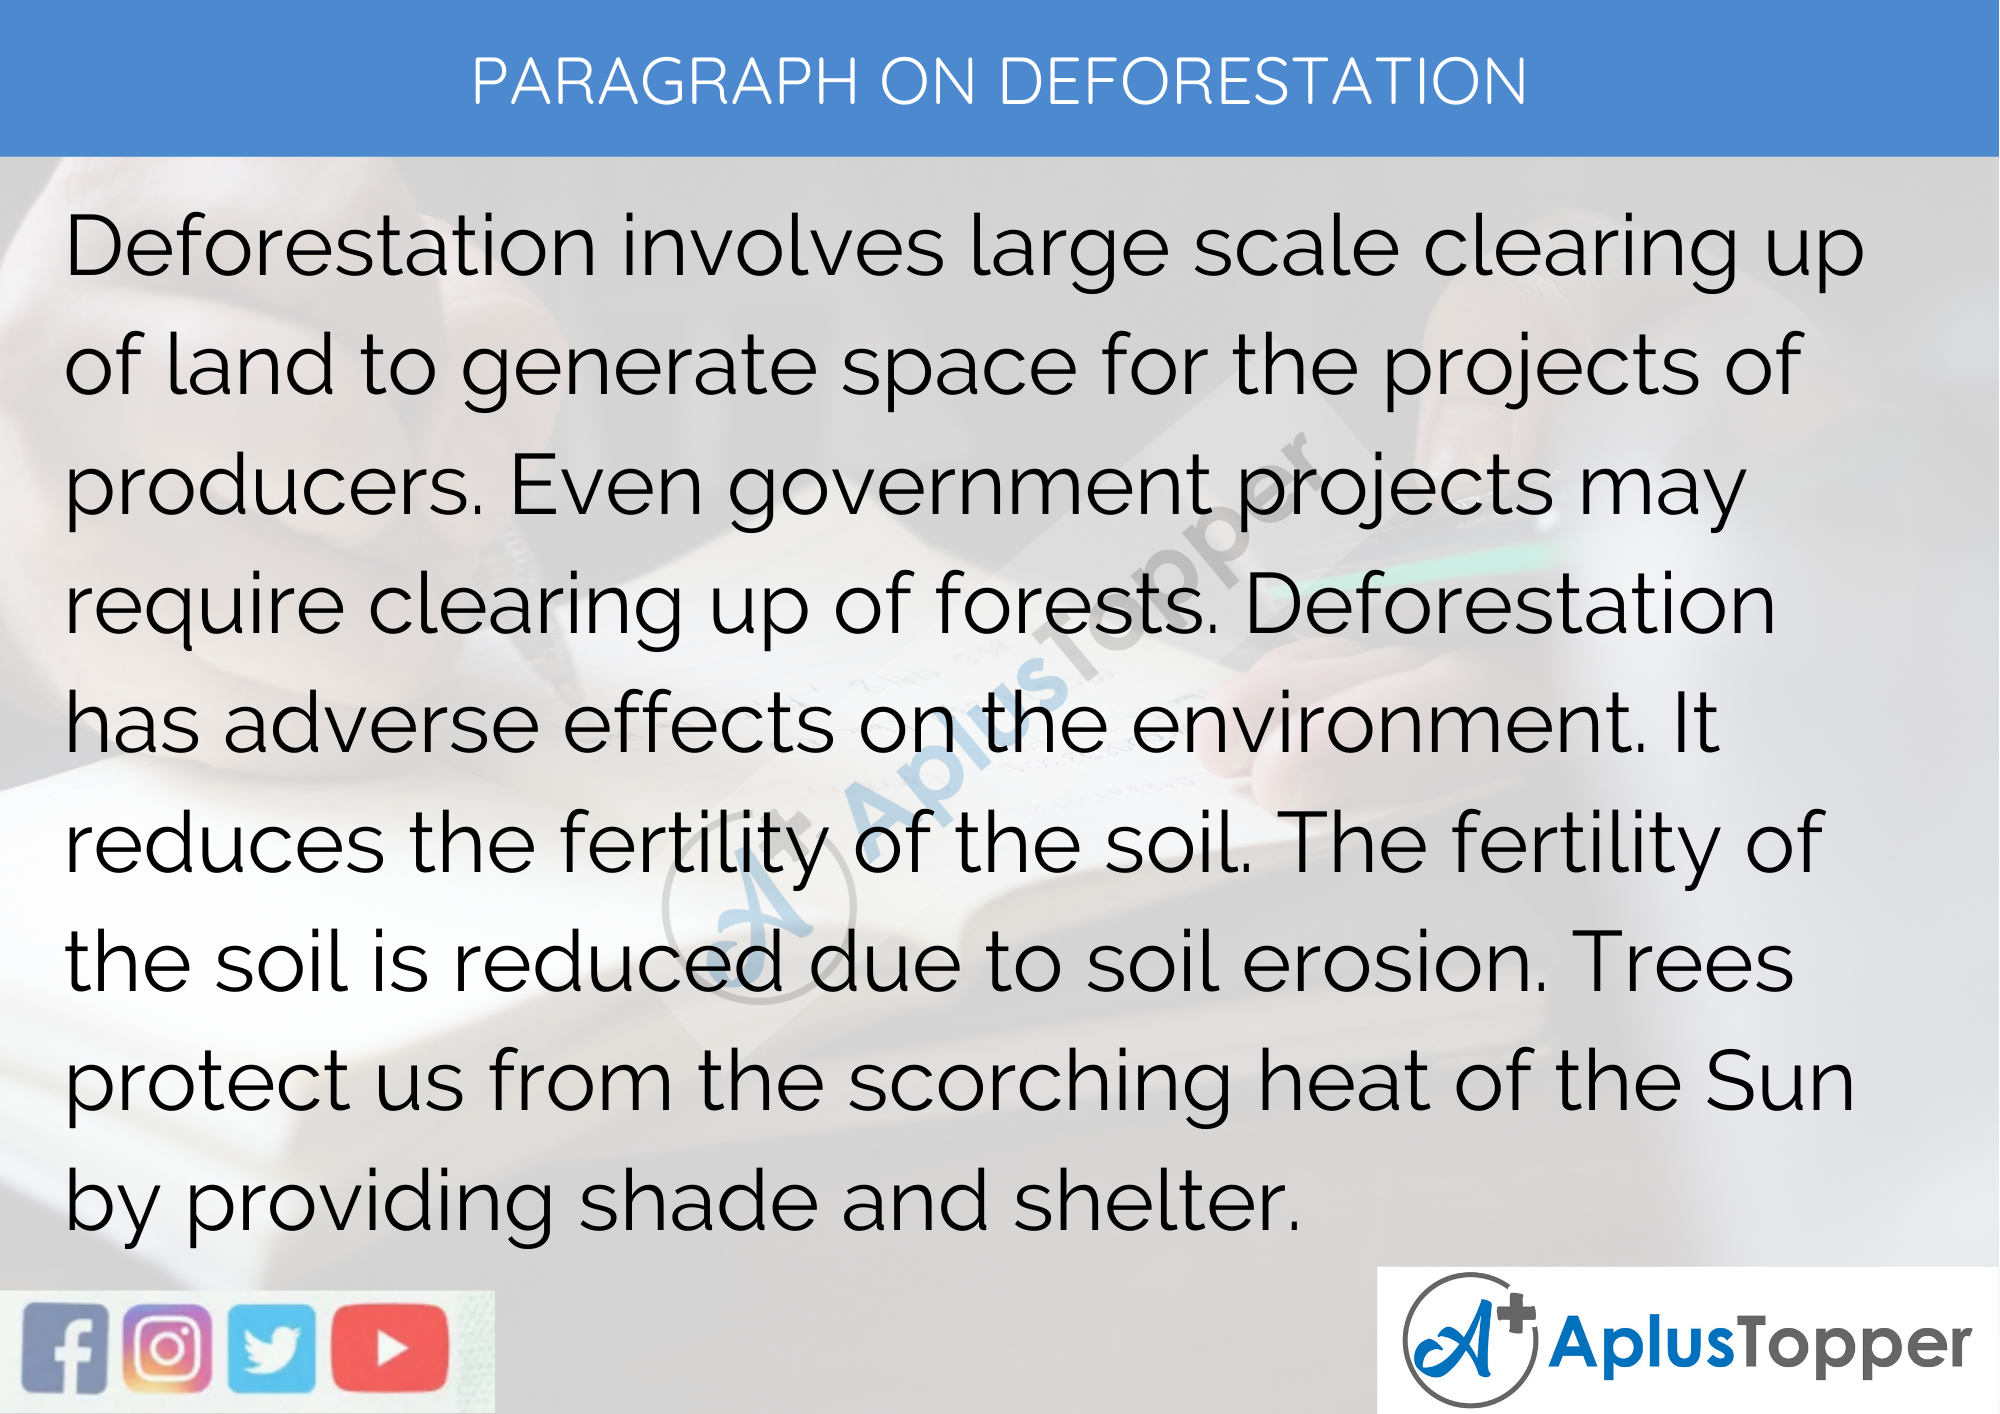 Paragraph On Deforestation - 100 Words for Classes 1, 2, 3 Kids